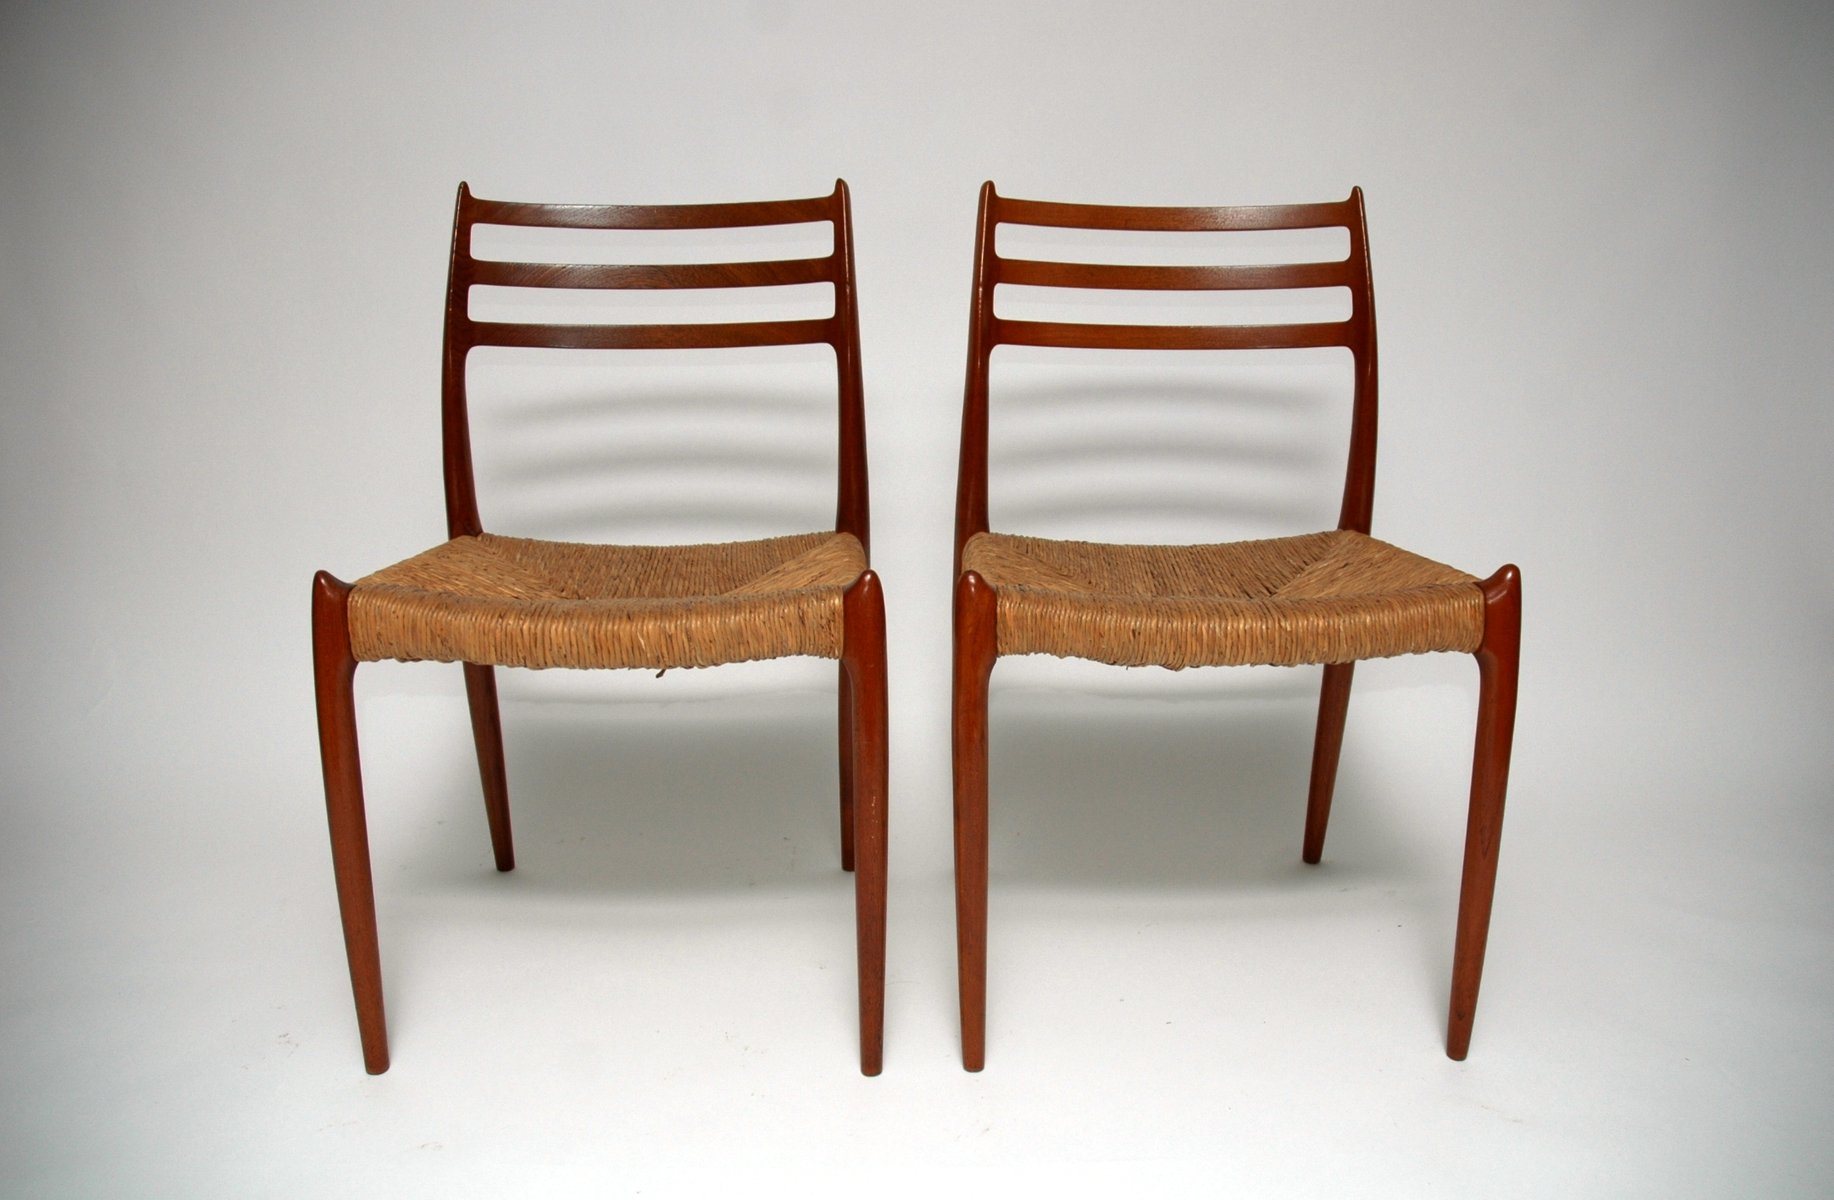 Mid century model dining chairs by niels o moller for